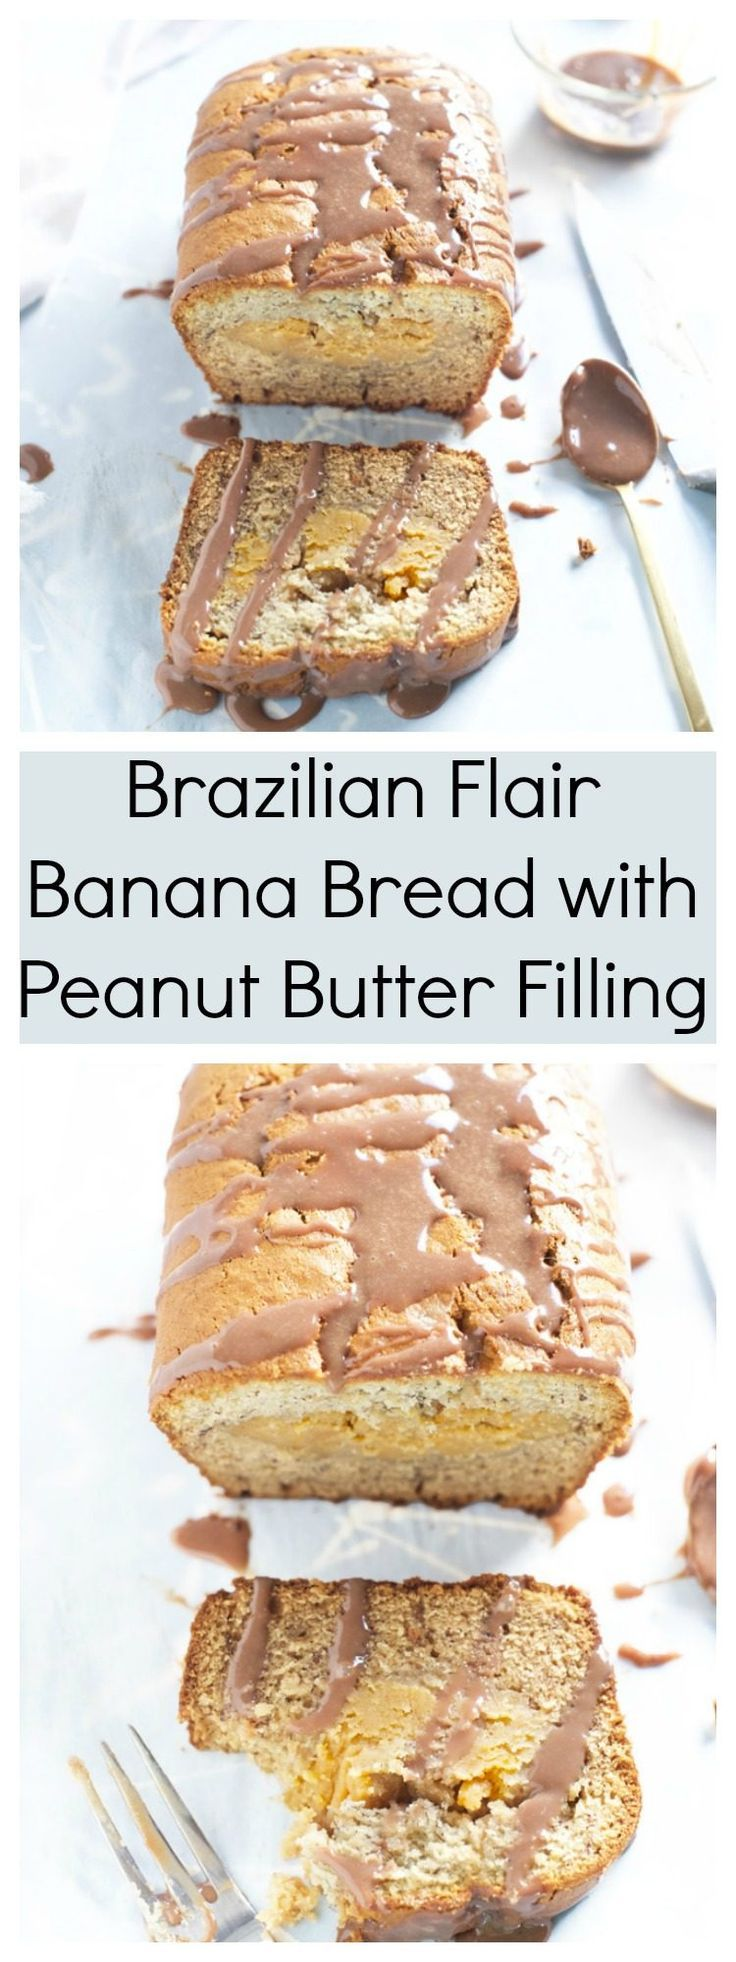 BRAZILIAN FLAIR BANANA BREAD WITH PEANUT BUTTER FILLING